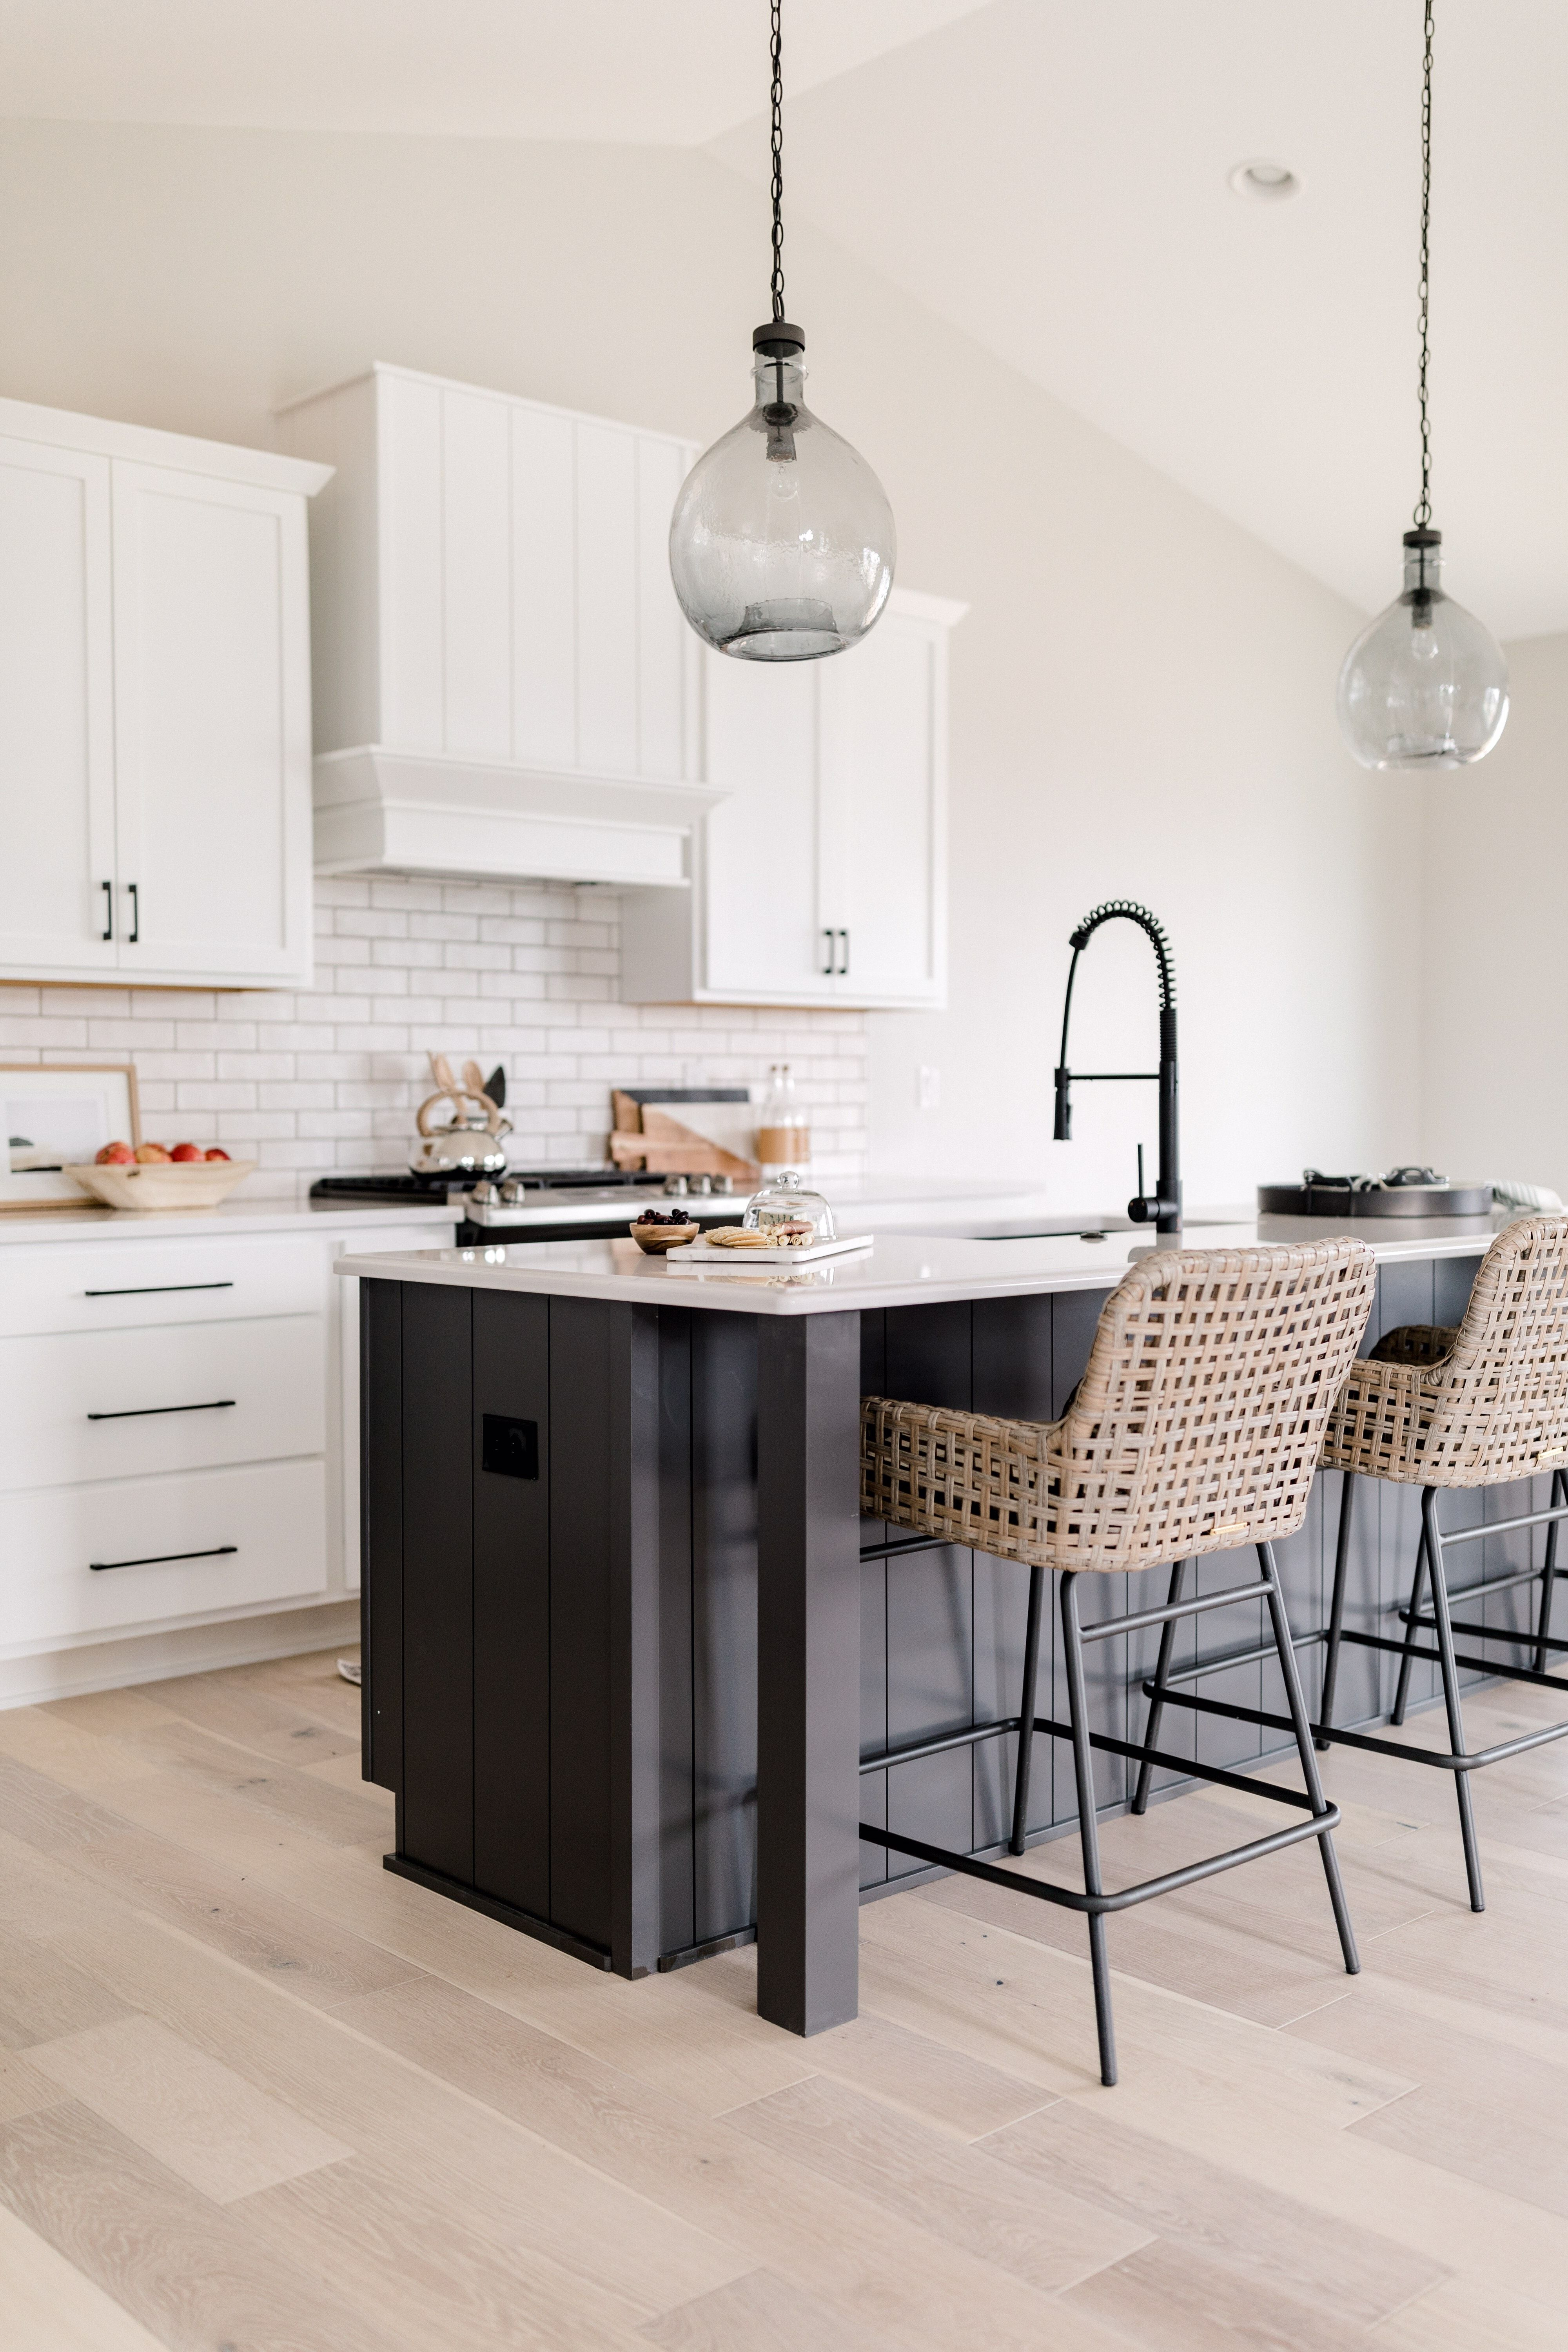 A Simple Modern Farmhouse Kitchen From Black Birch Homes Includes